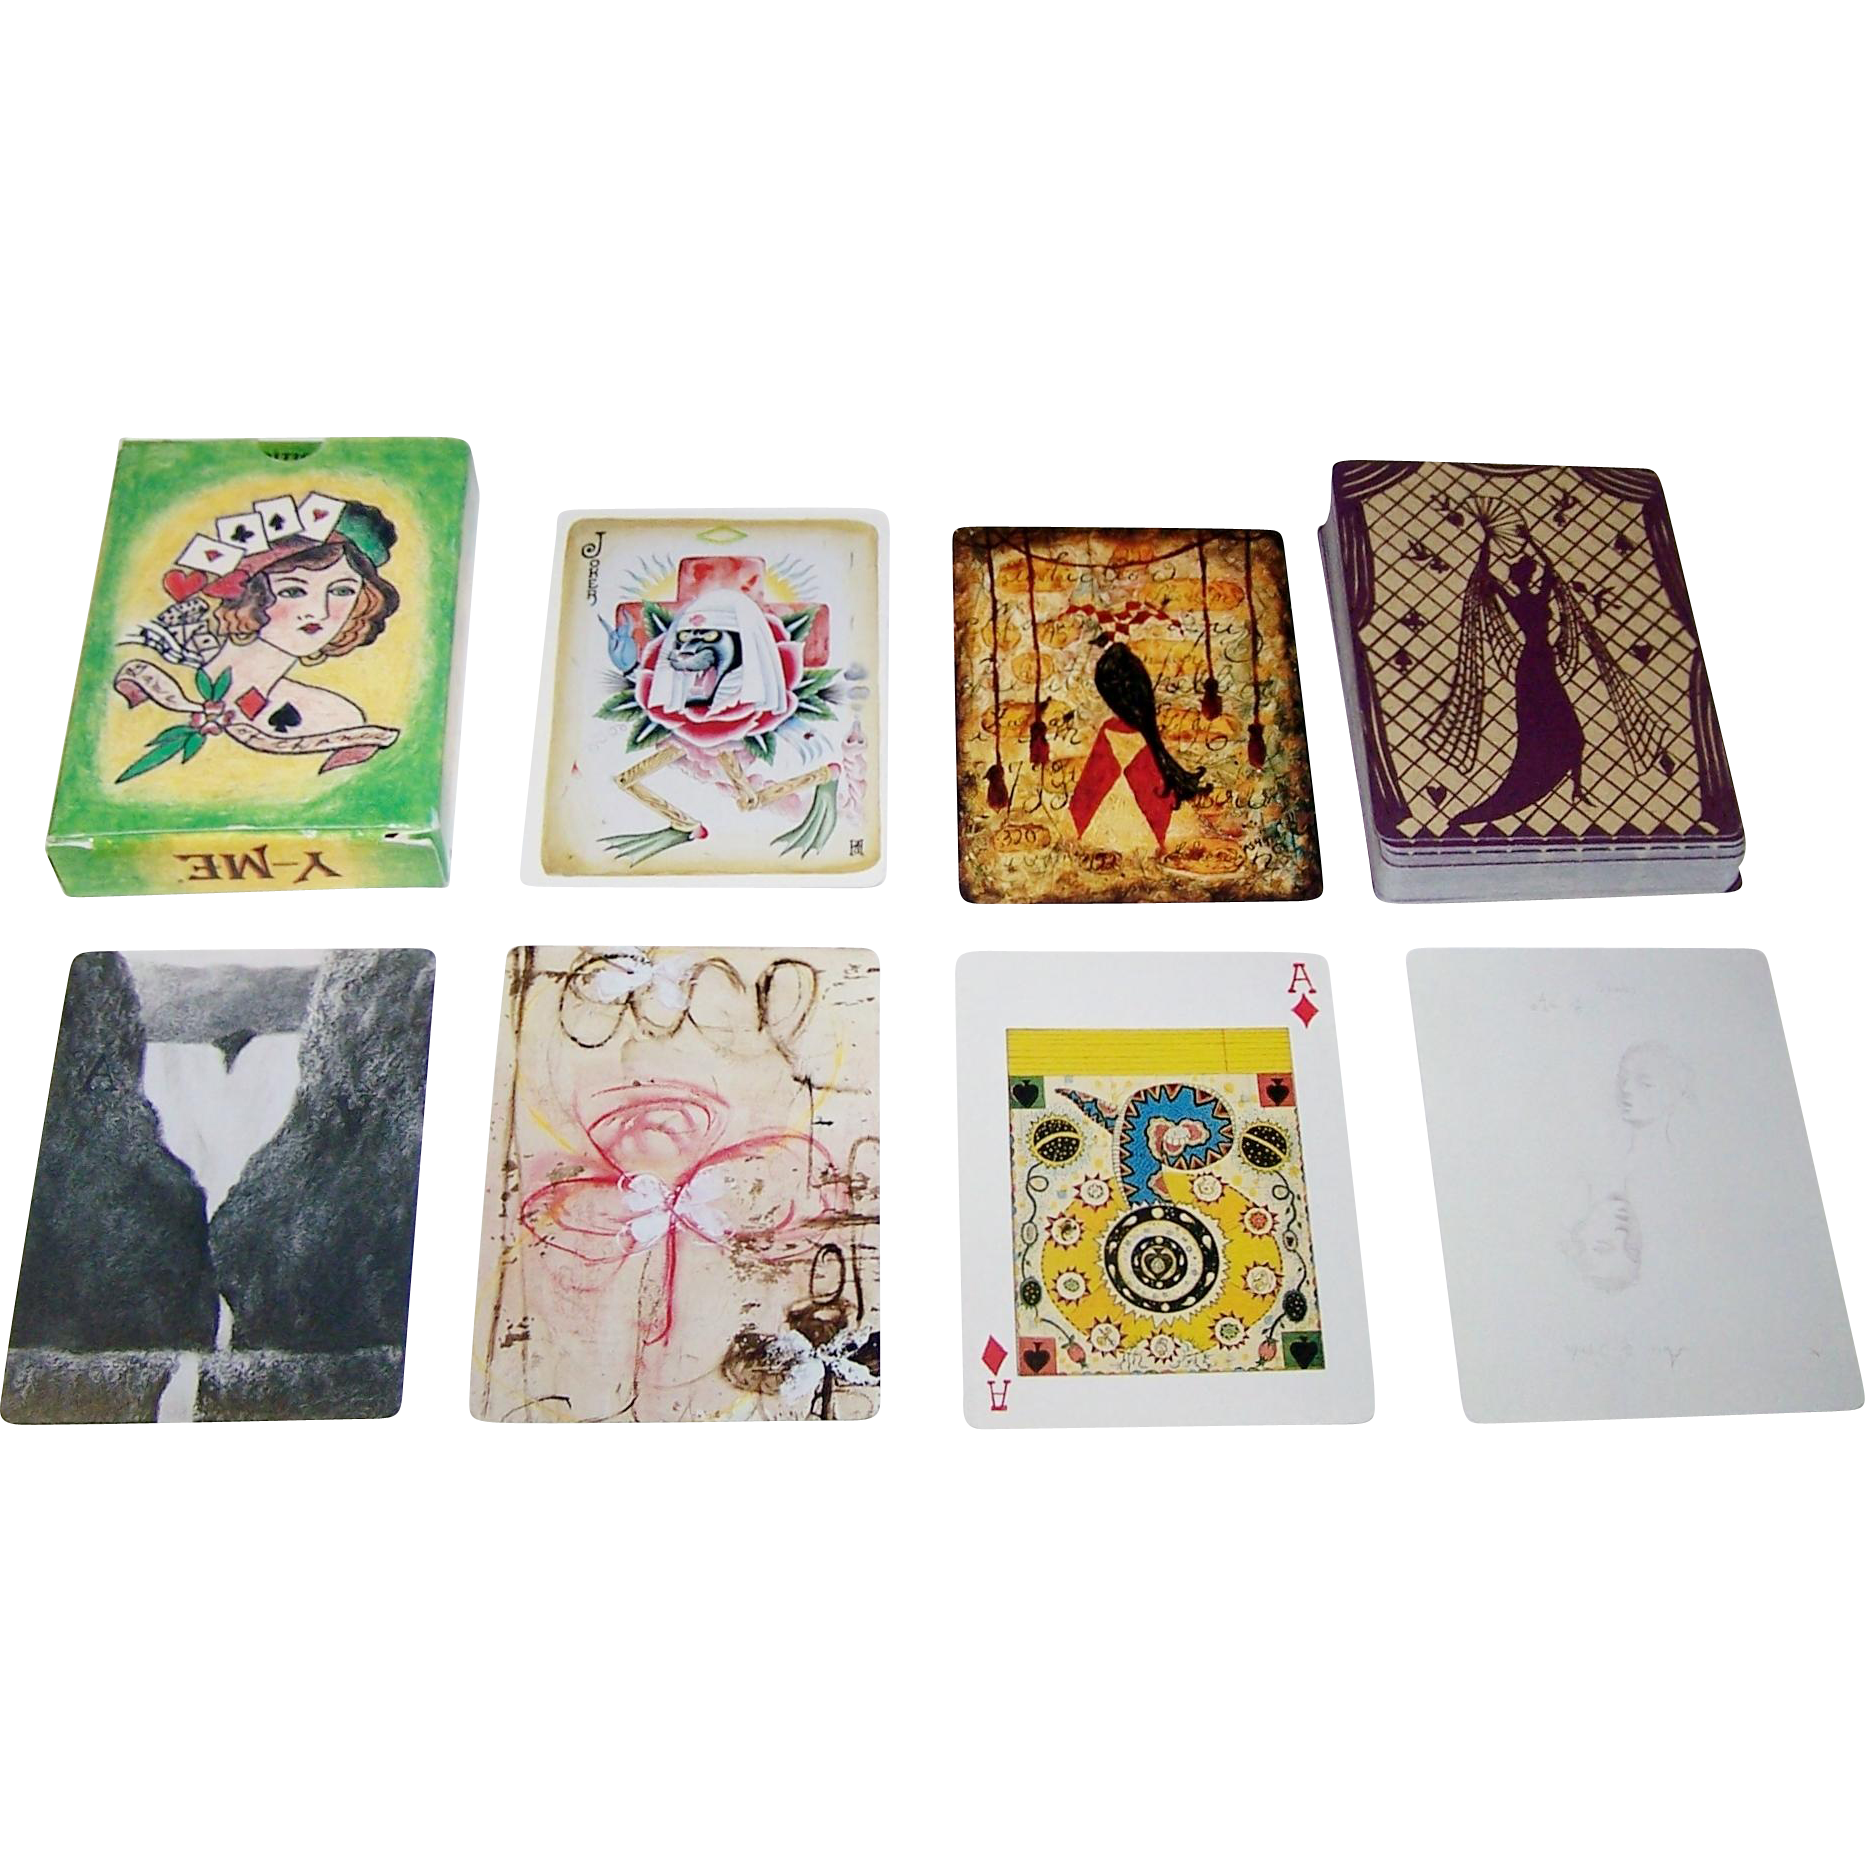 "Y-ME National Breast Cancer Organization ""A Game of Chance"" Playing Cards, 53 Different Artists, Hollis Sigler Organizer, Printworks Gallery, c.1997"